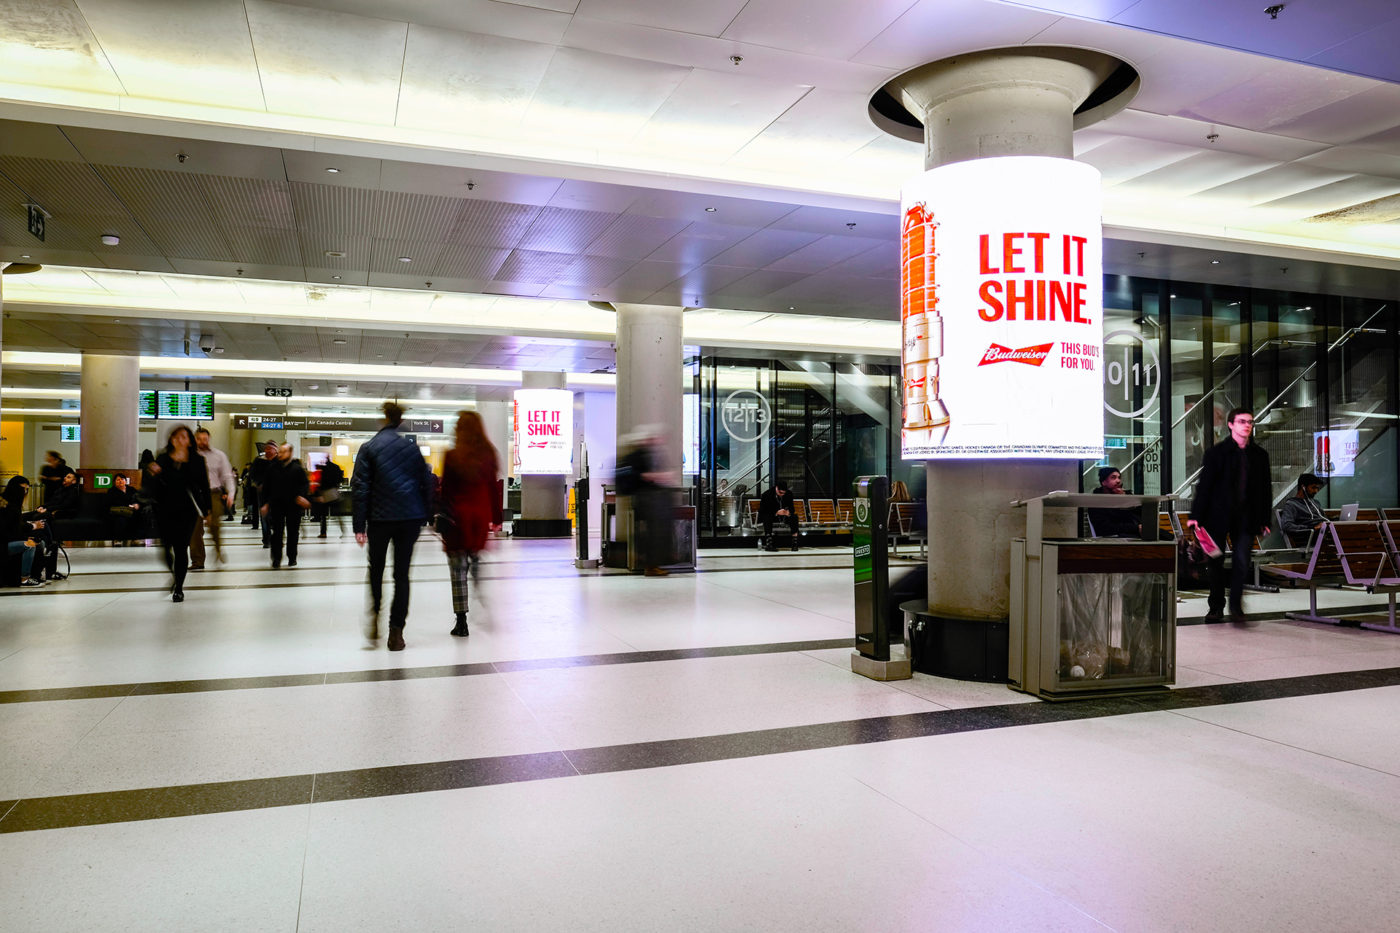 Budweiser - Let It Shine - Union Station - Digital Column Network (Toronto, Ontario)